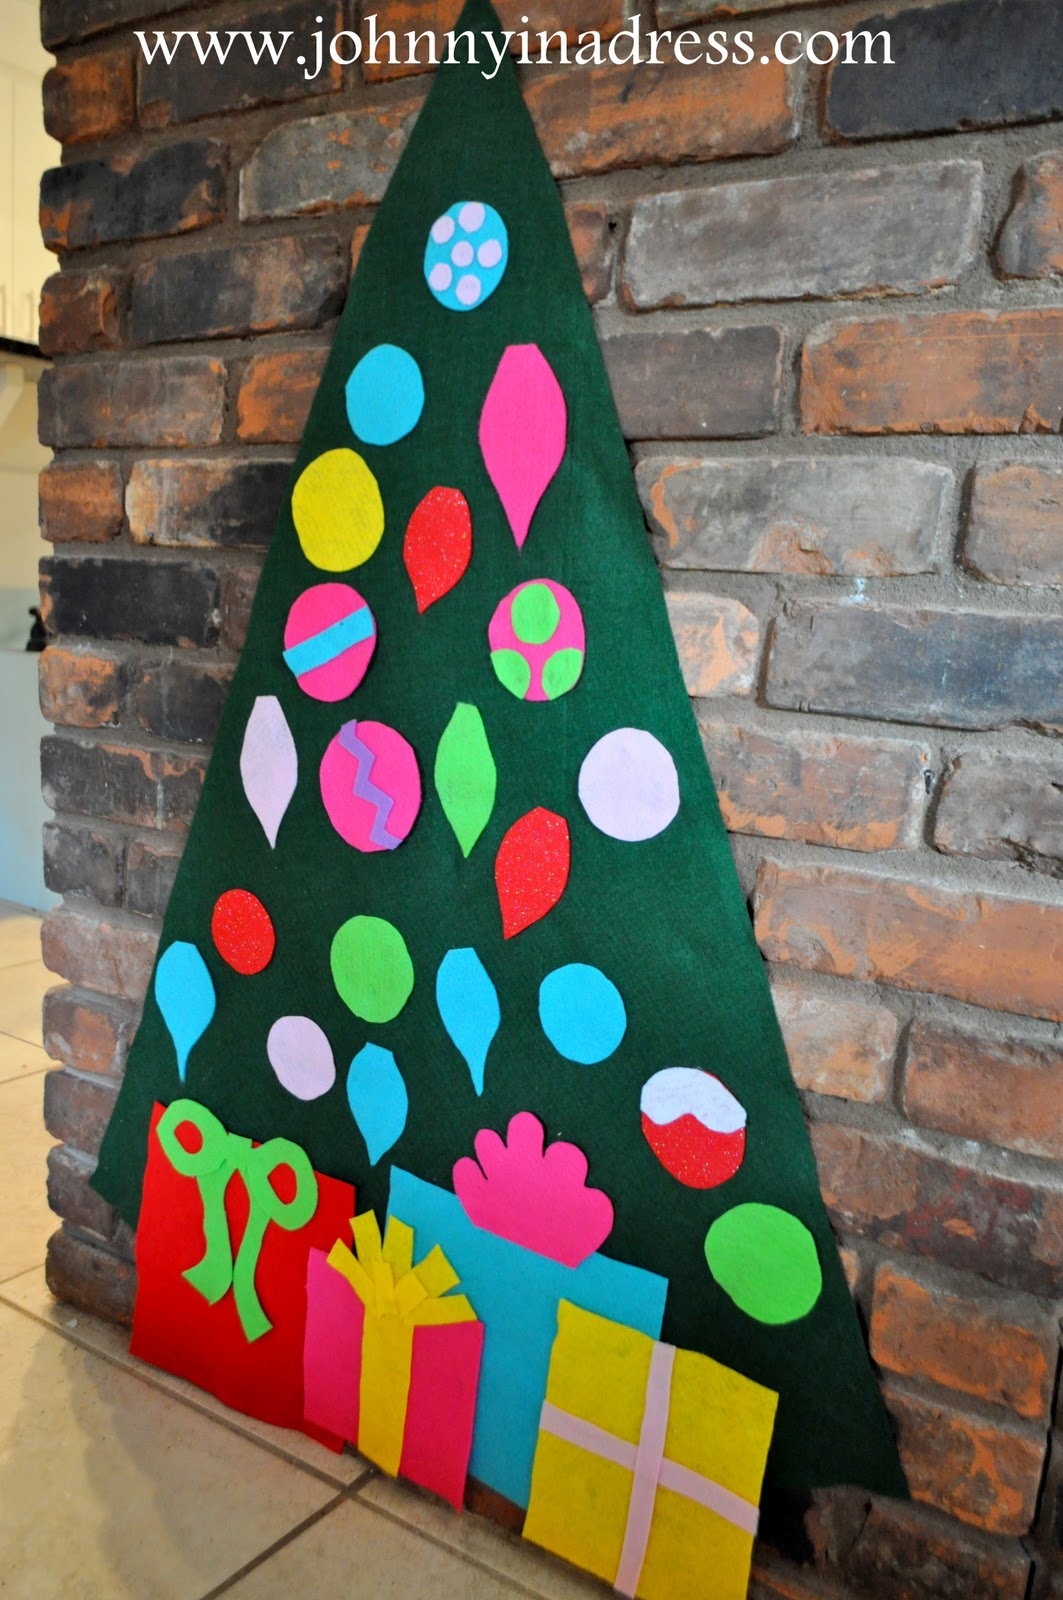 Johnny In A Dress: Play Felt Tree & Ornaments